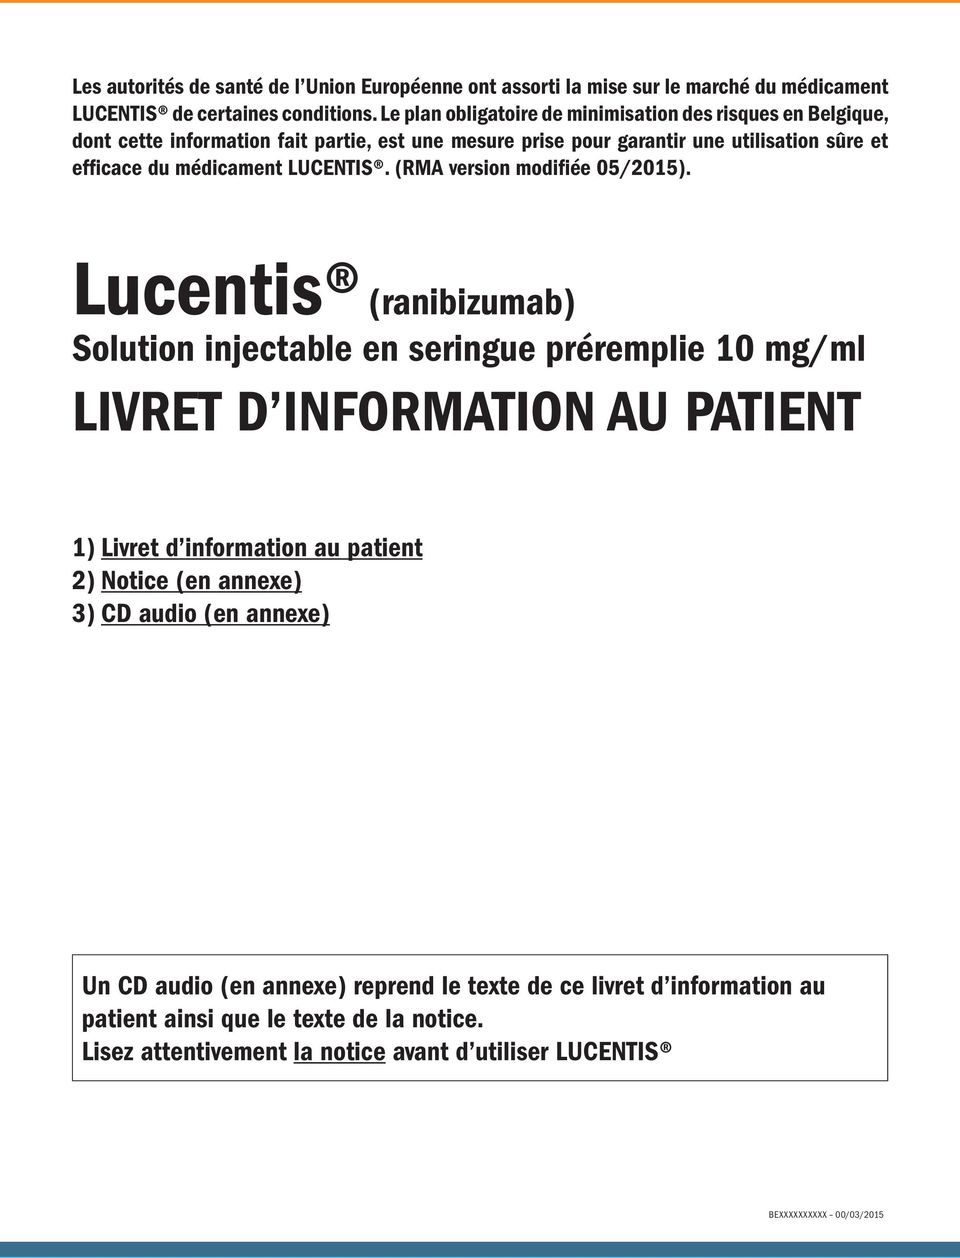 LUCENTIS. (RMA version modifiée 05/2015).